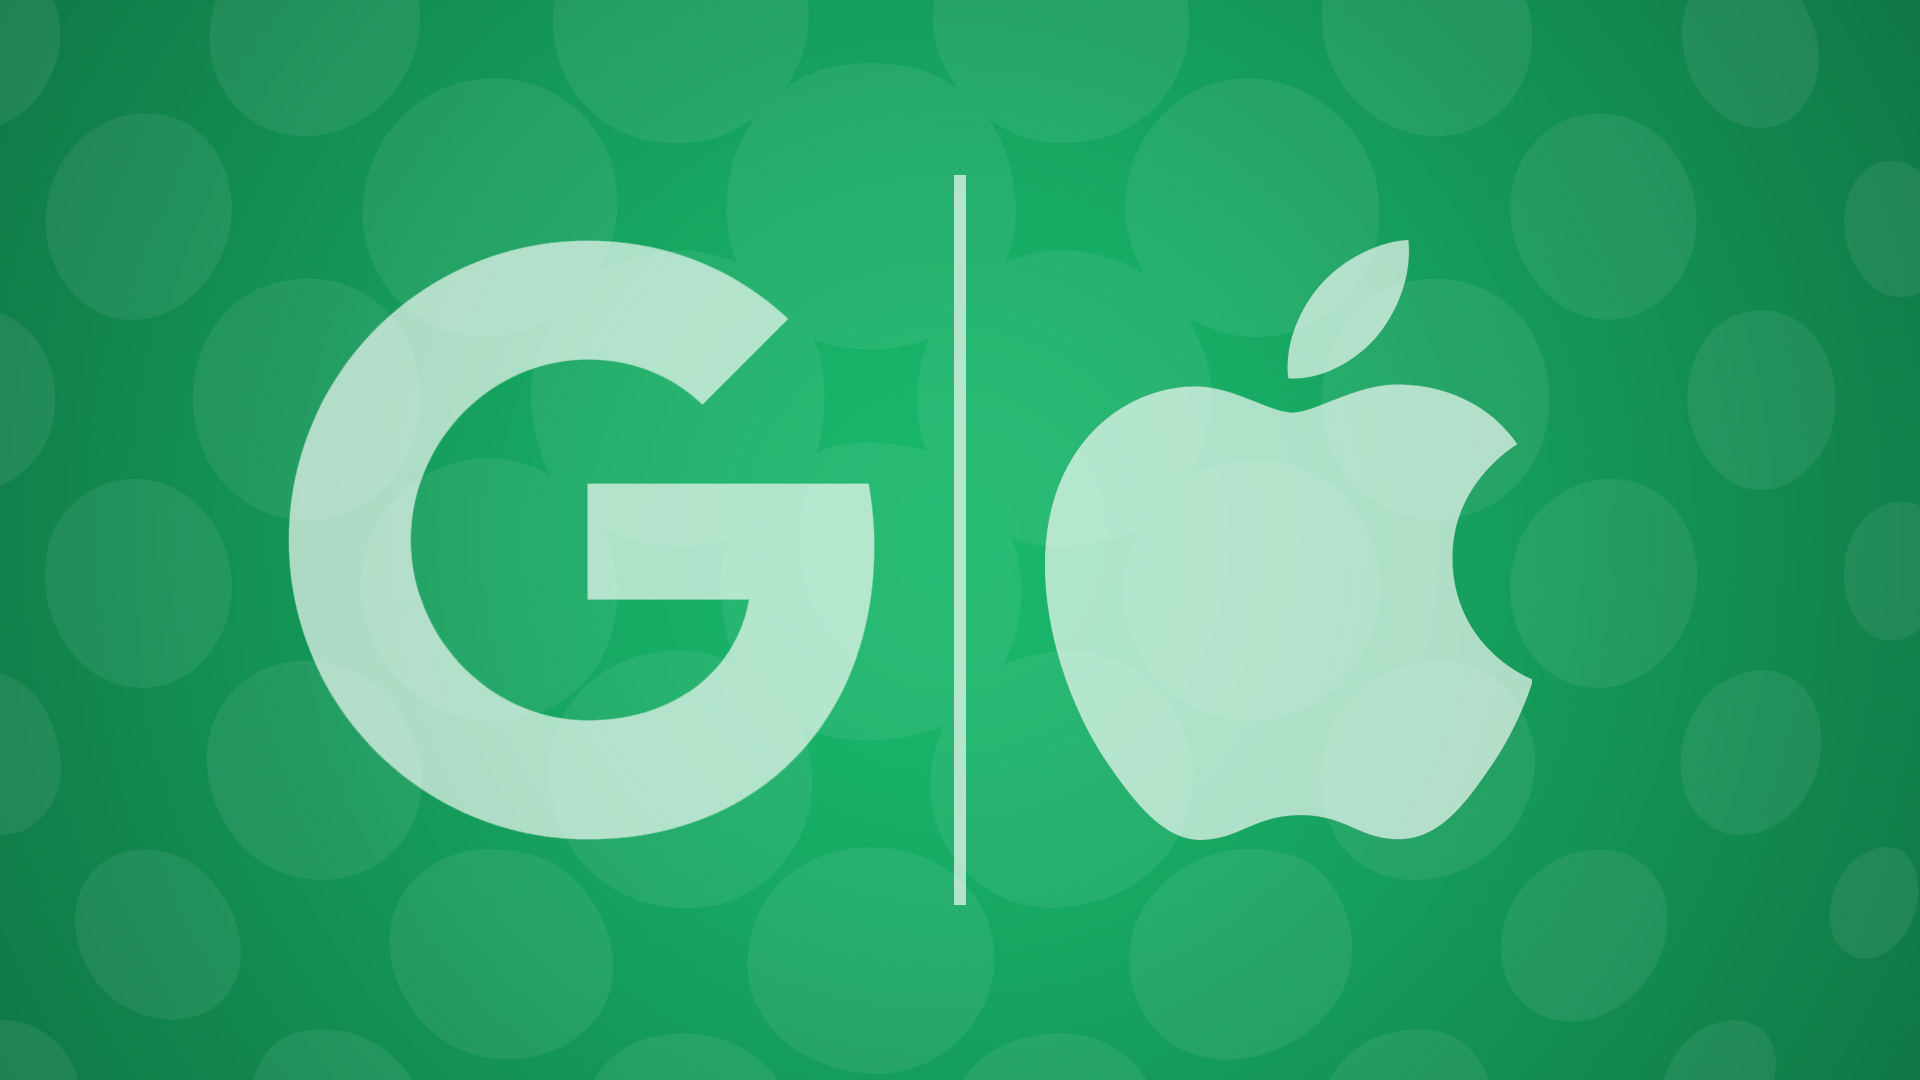 google-apple-green3-1920